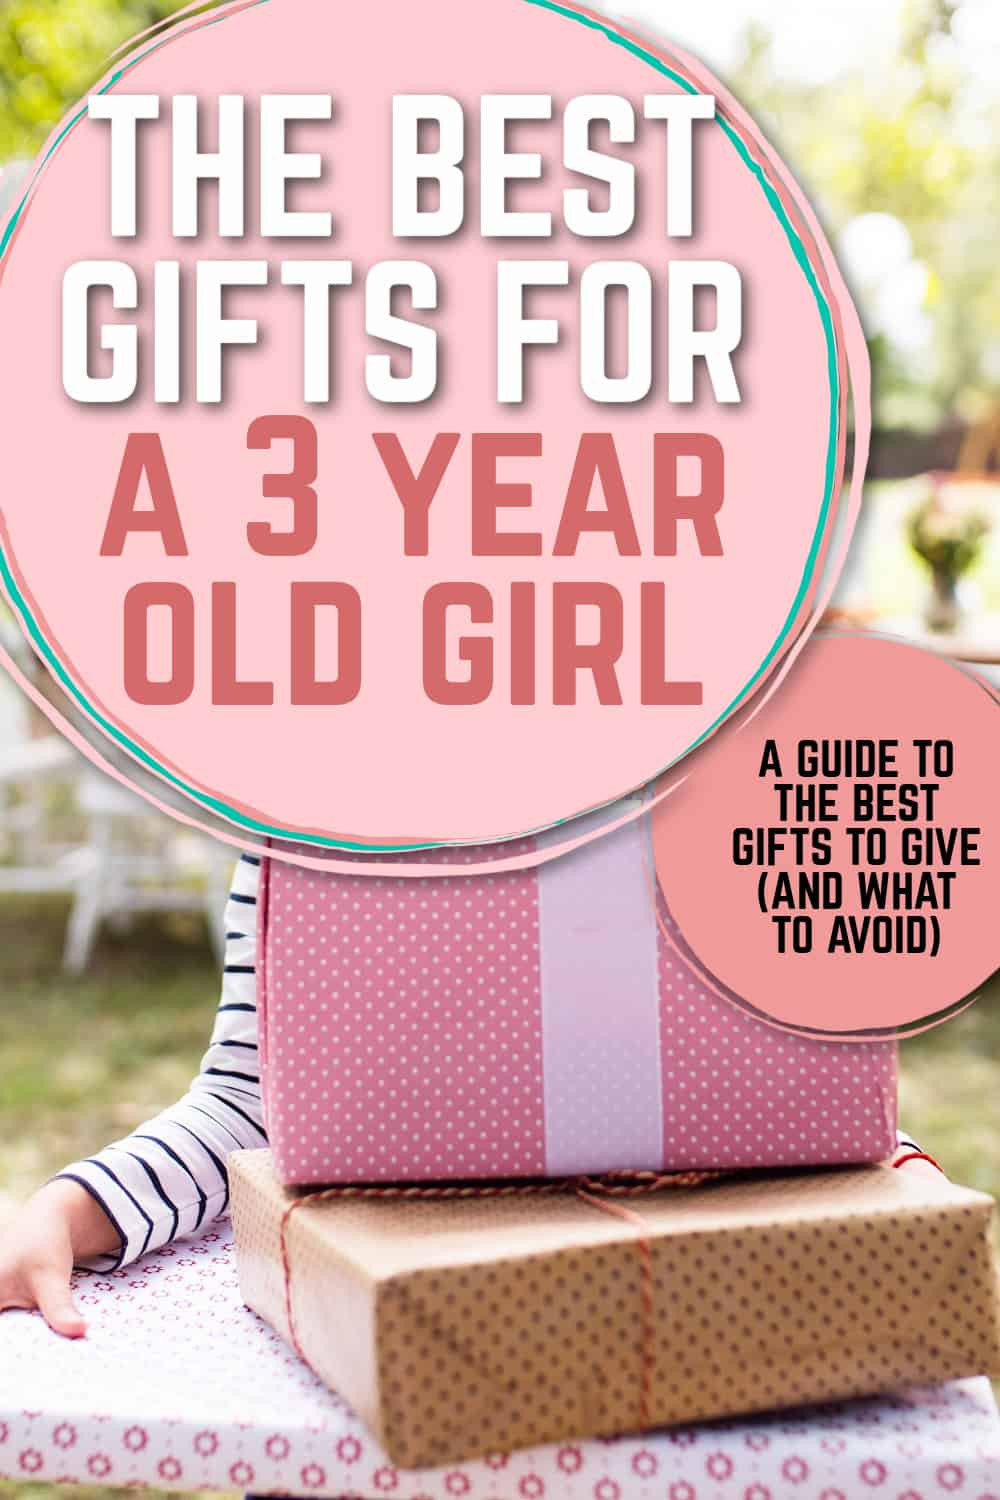 gifts for a 3 year old girl pinterest pin